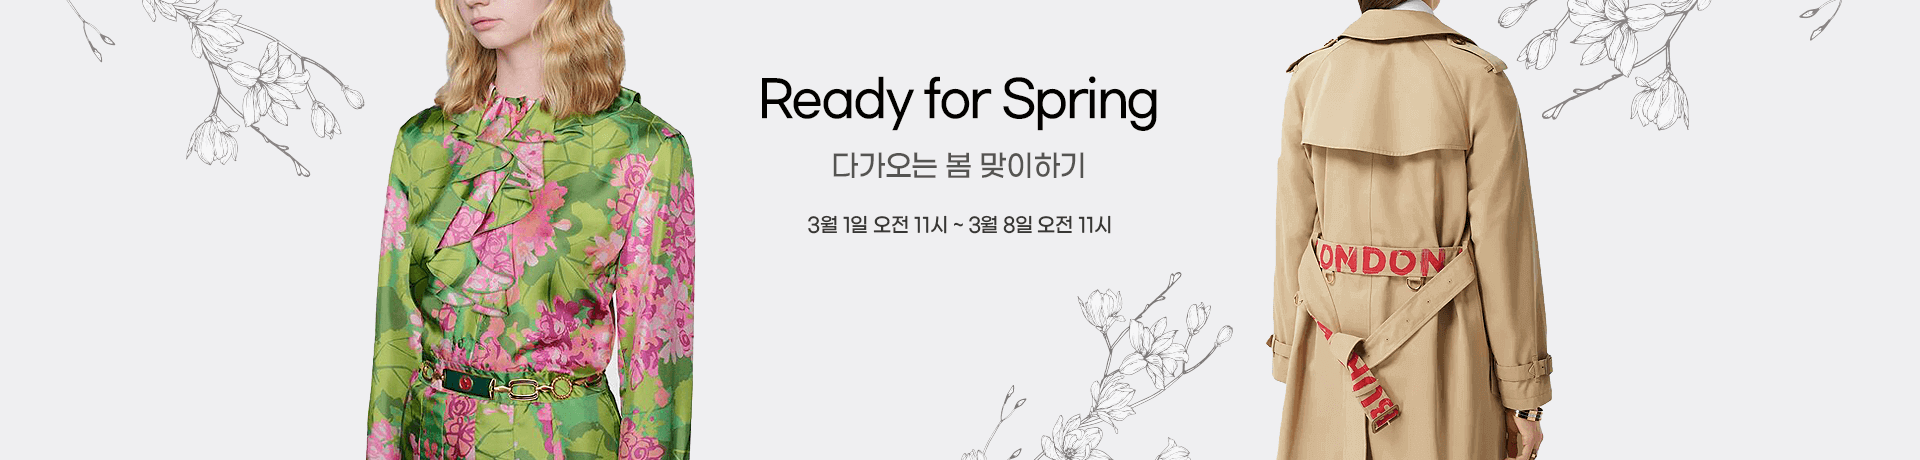 210301_yh_ready-for-the-spring_pc_efeff1